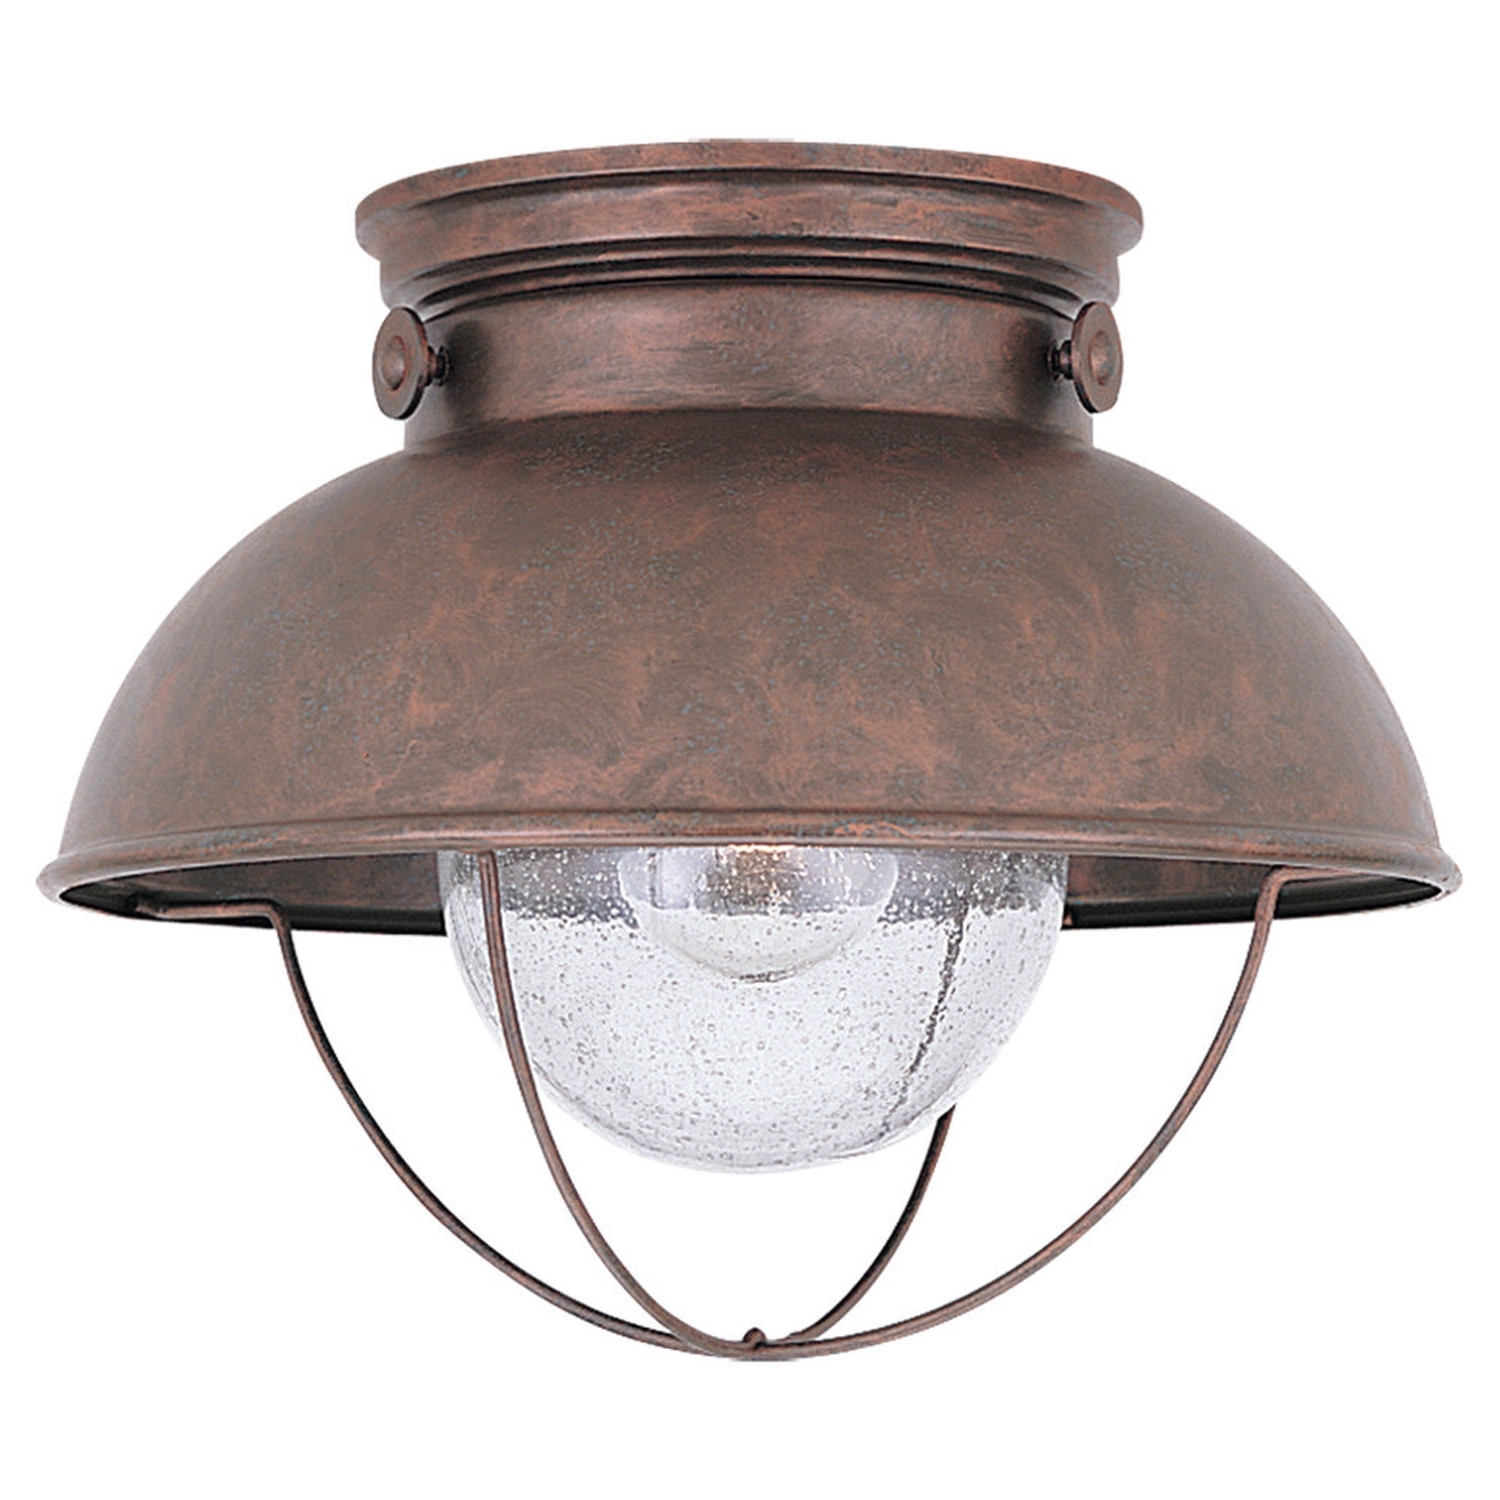 Outdoor Ceiling Lights Intended For Popular Sea Gull Lighting Sebring Weathered Copper Outdoor Ceiling Light On Sale (View 16 of 20)